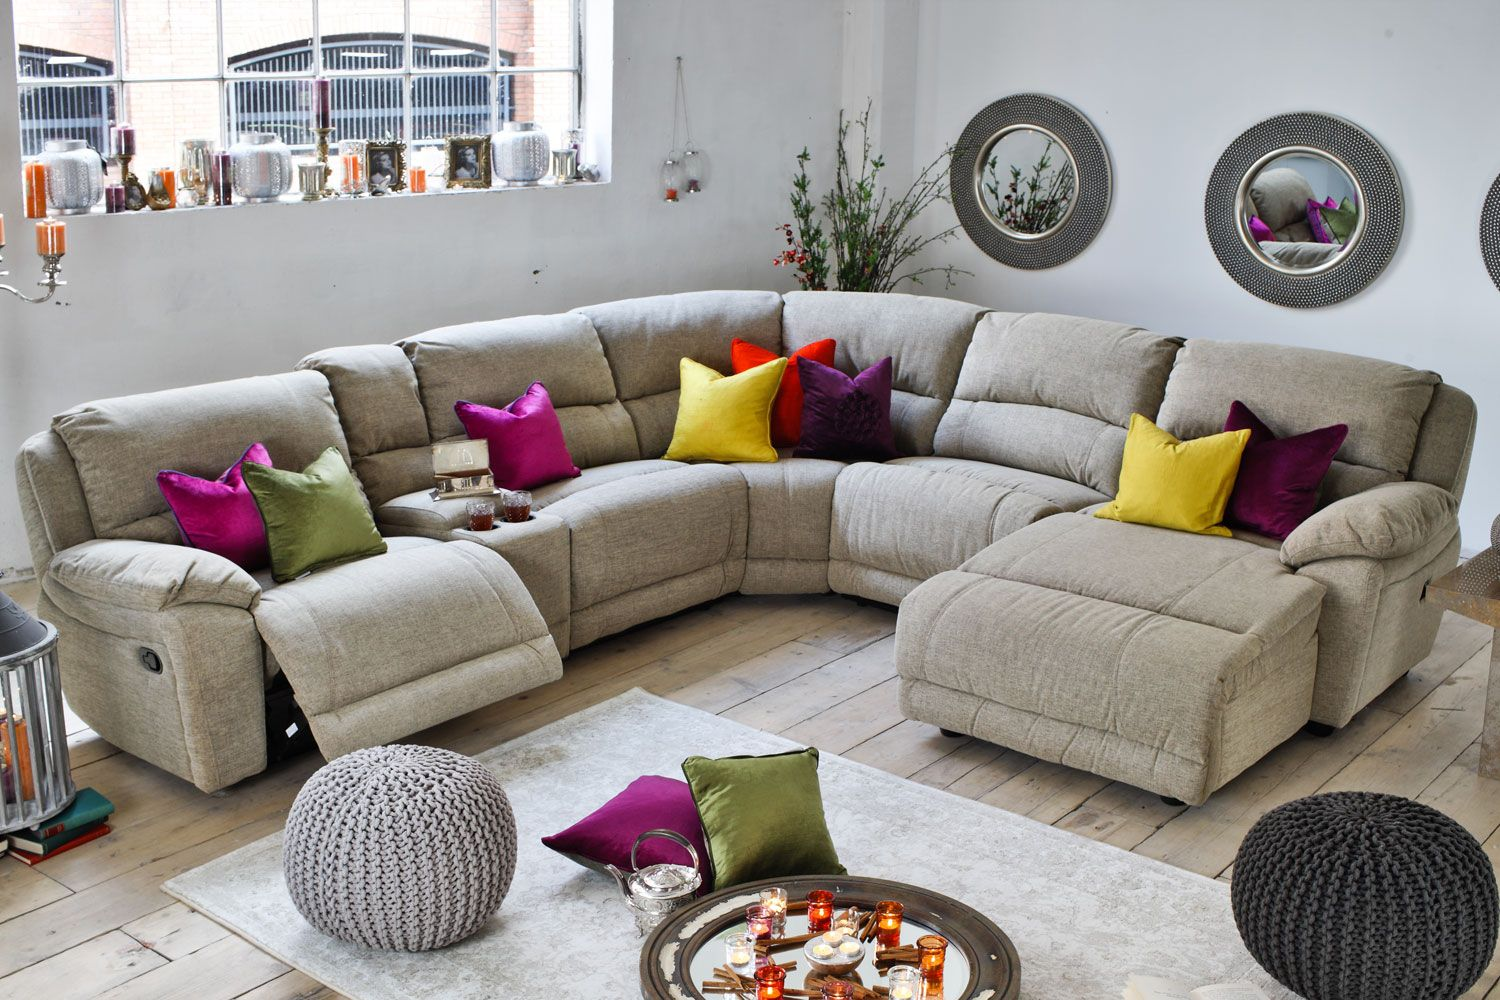 Recliner Sofa  Types of Corner Sofas to Save Your Living Room Space sofa Pinterest Living rooms Spaces and Room